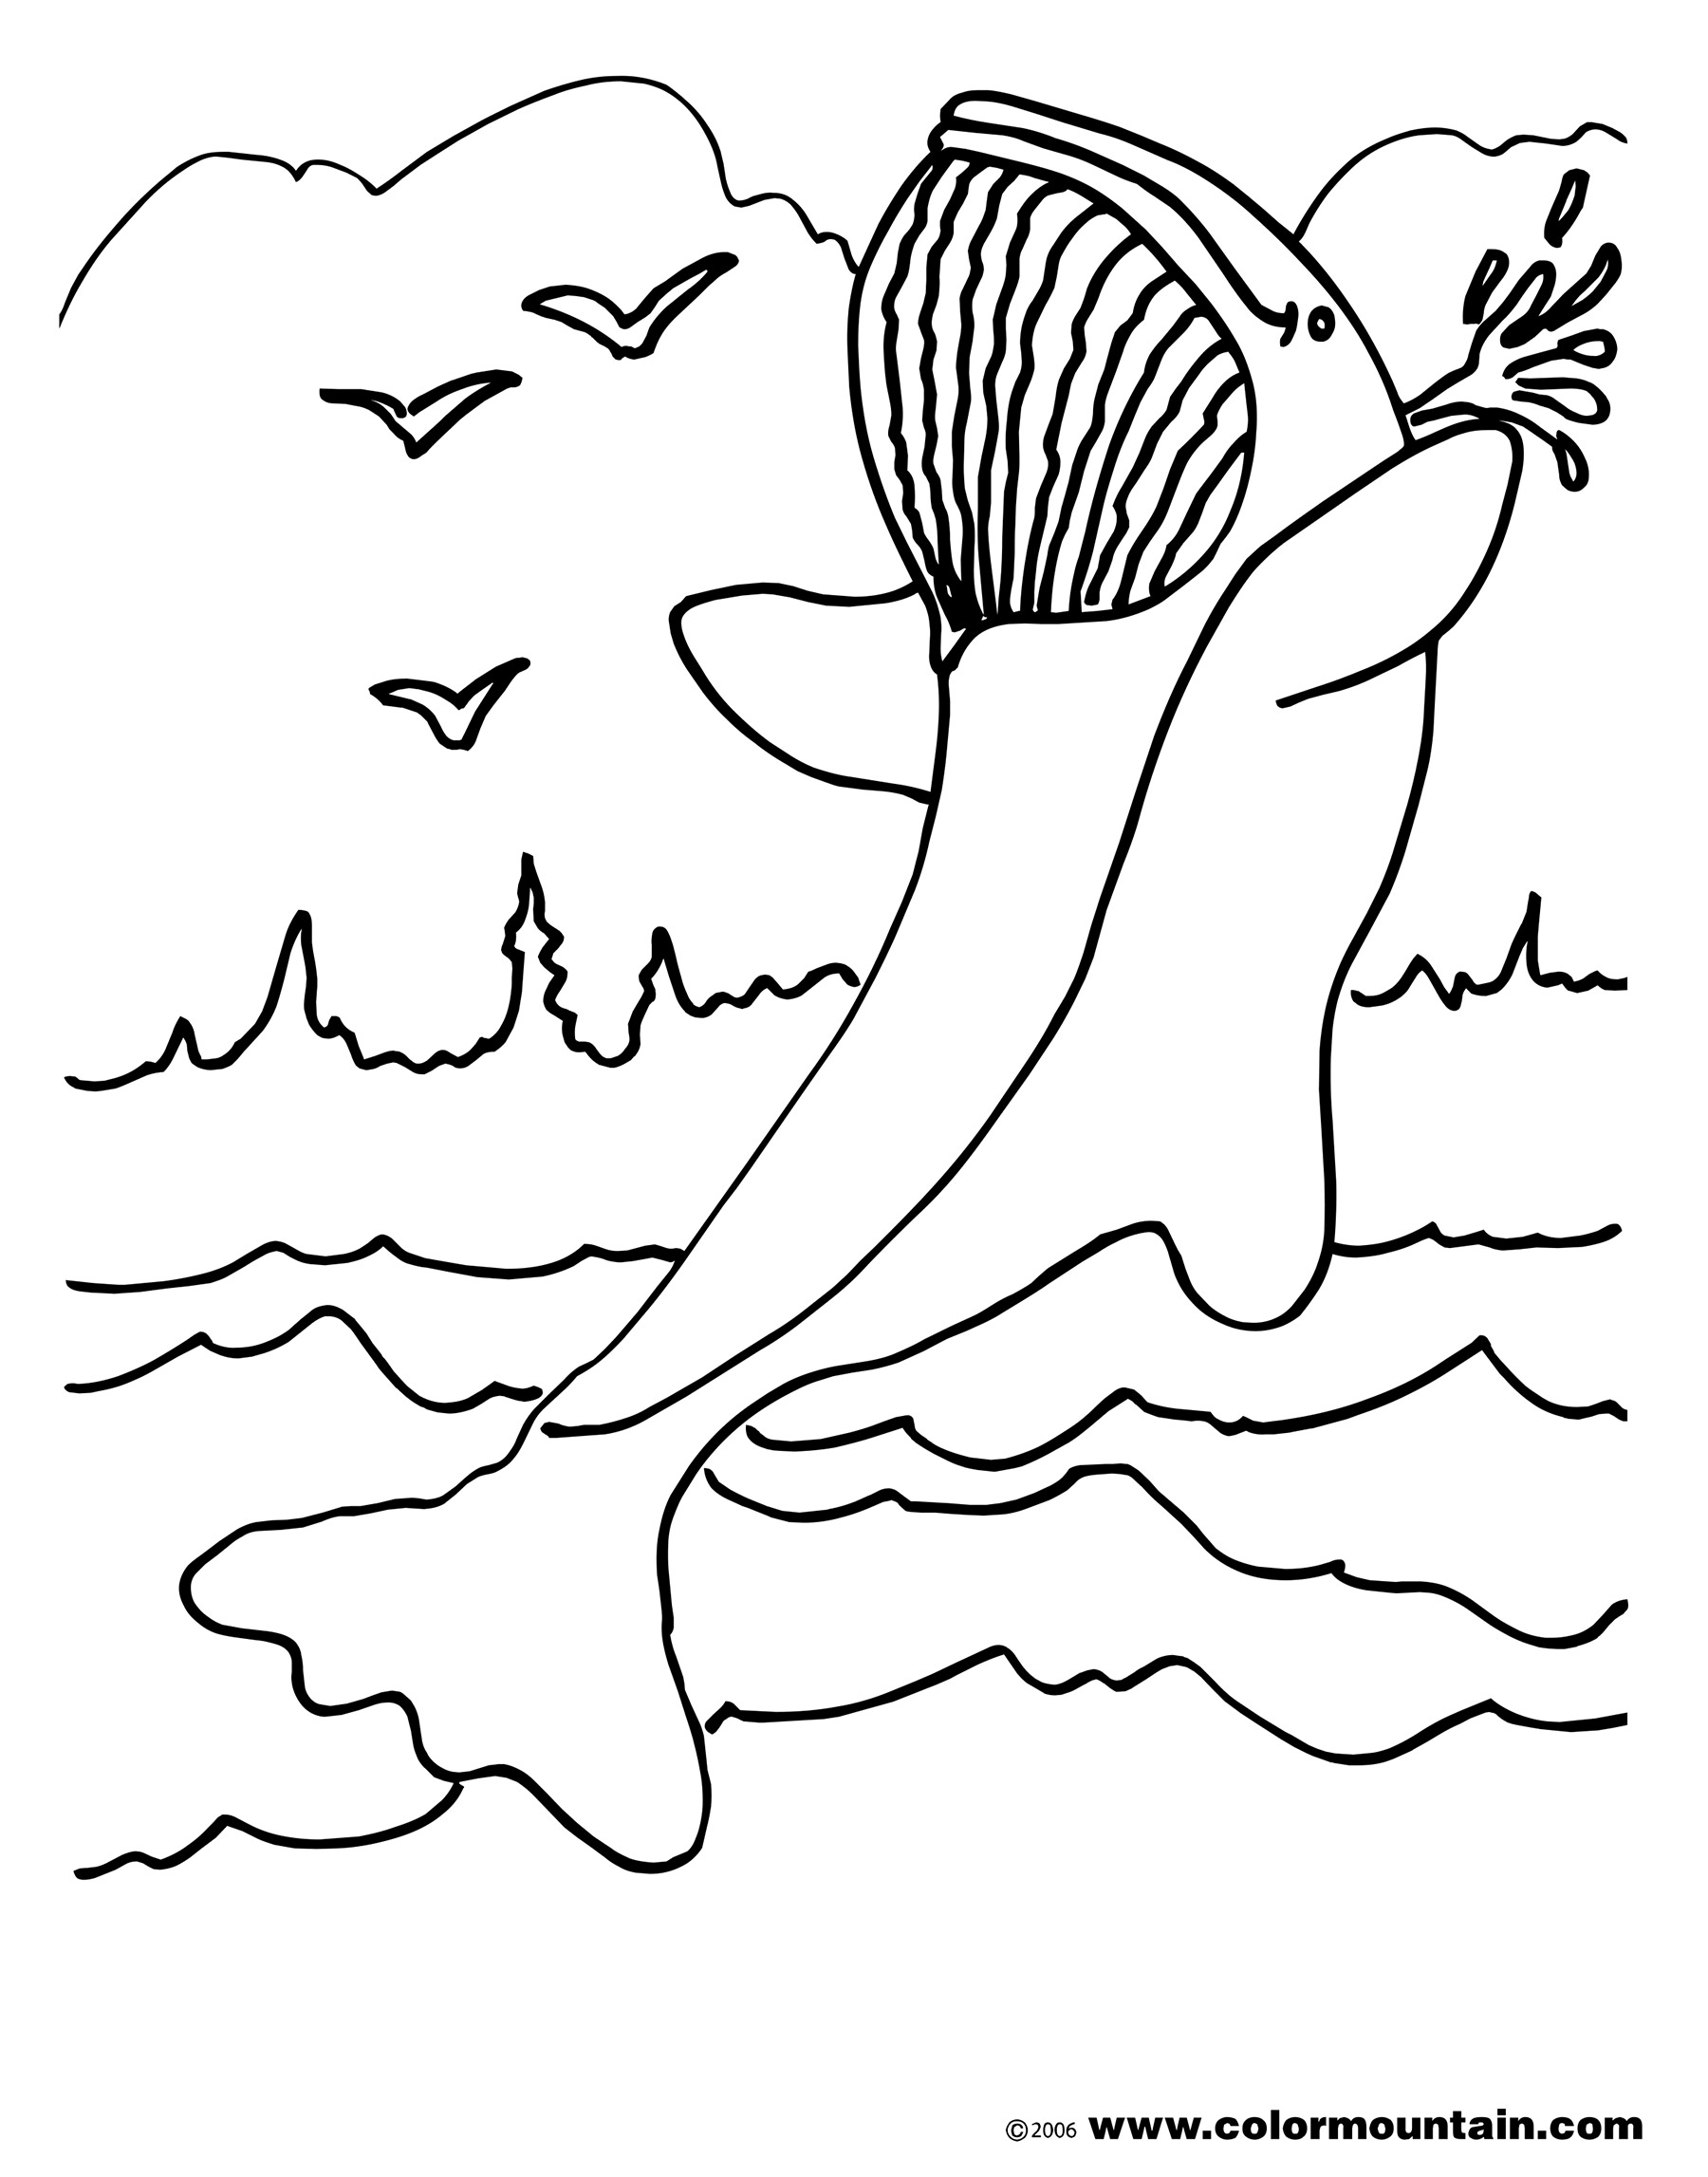 whale coloring picture free printable whale coloring pages for kids whale coloring picture